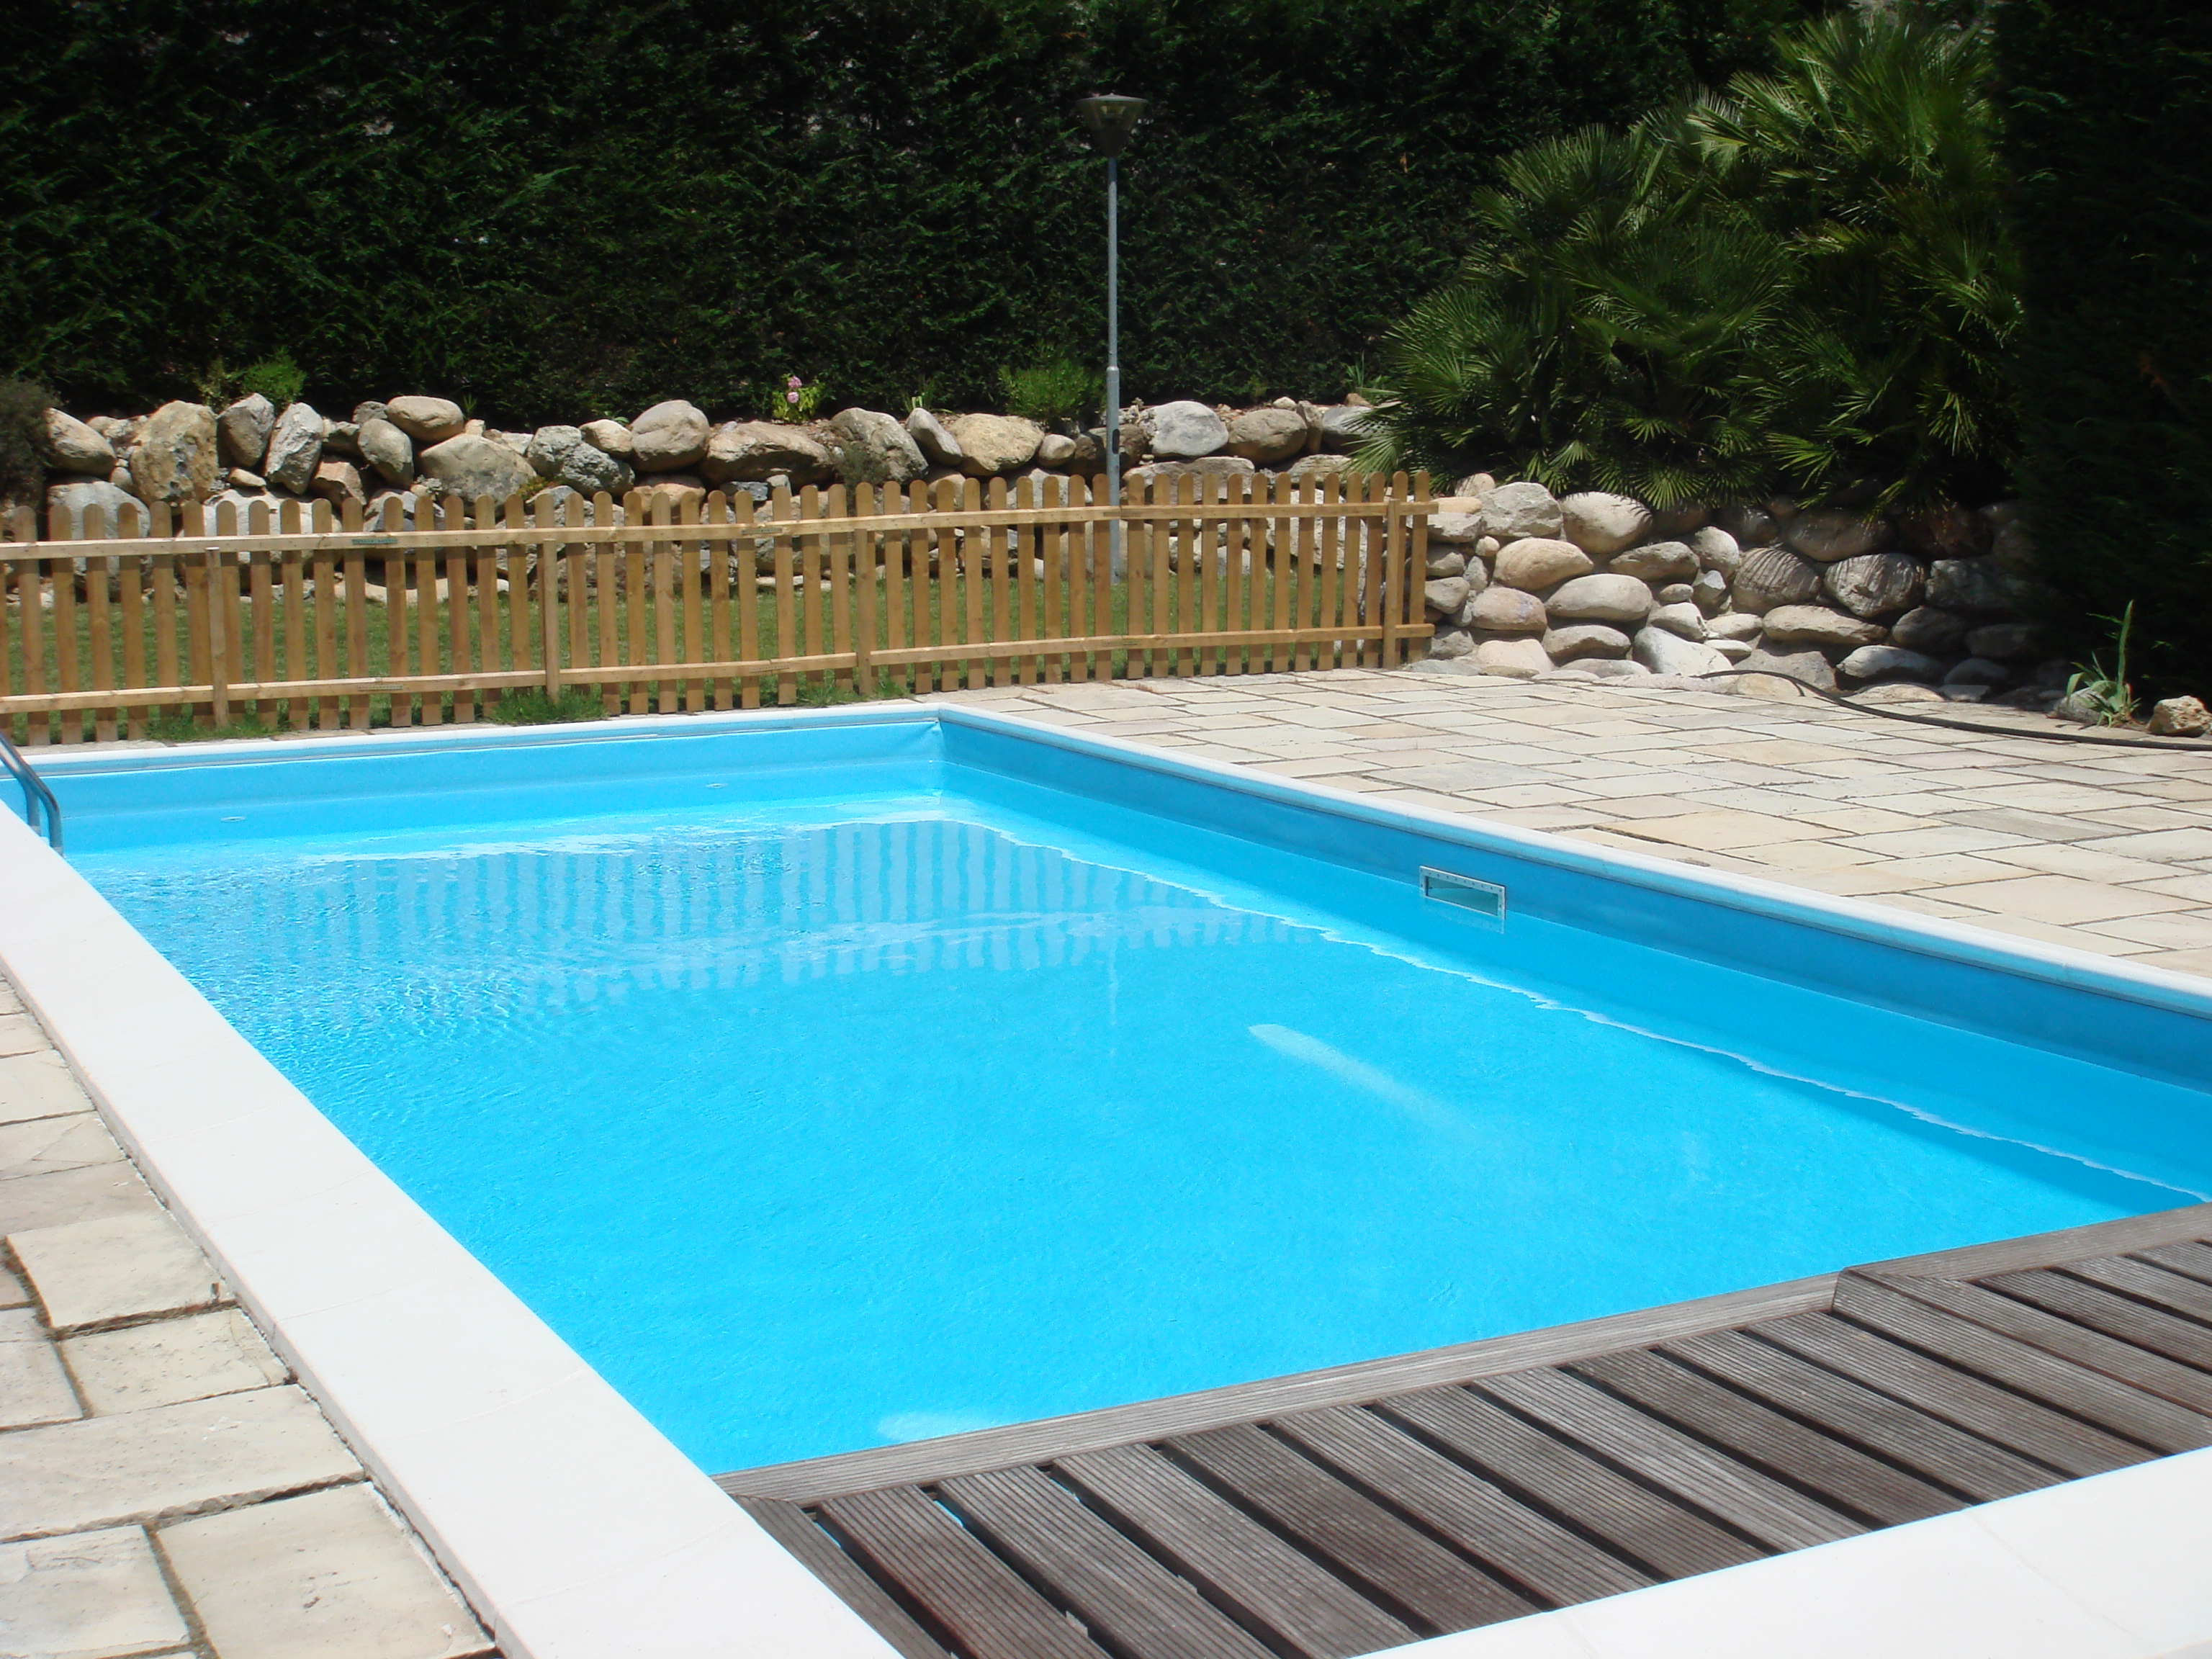 Image gallery outdoor swimming pools for Swimming pool images